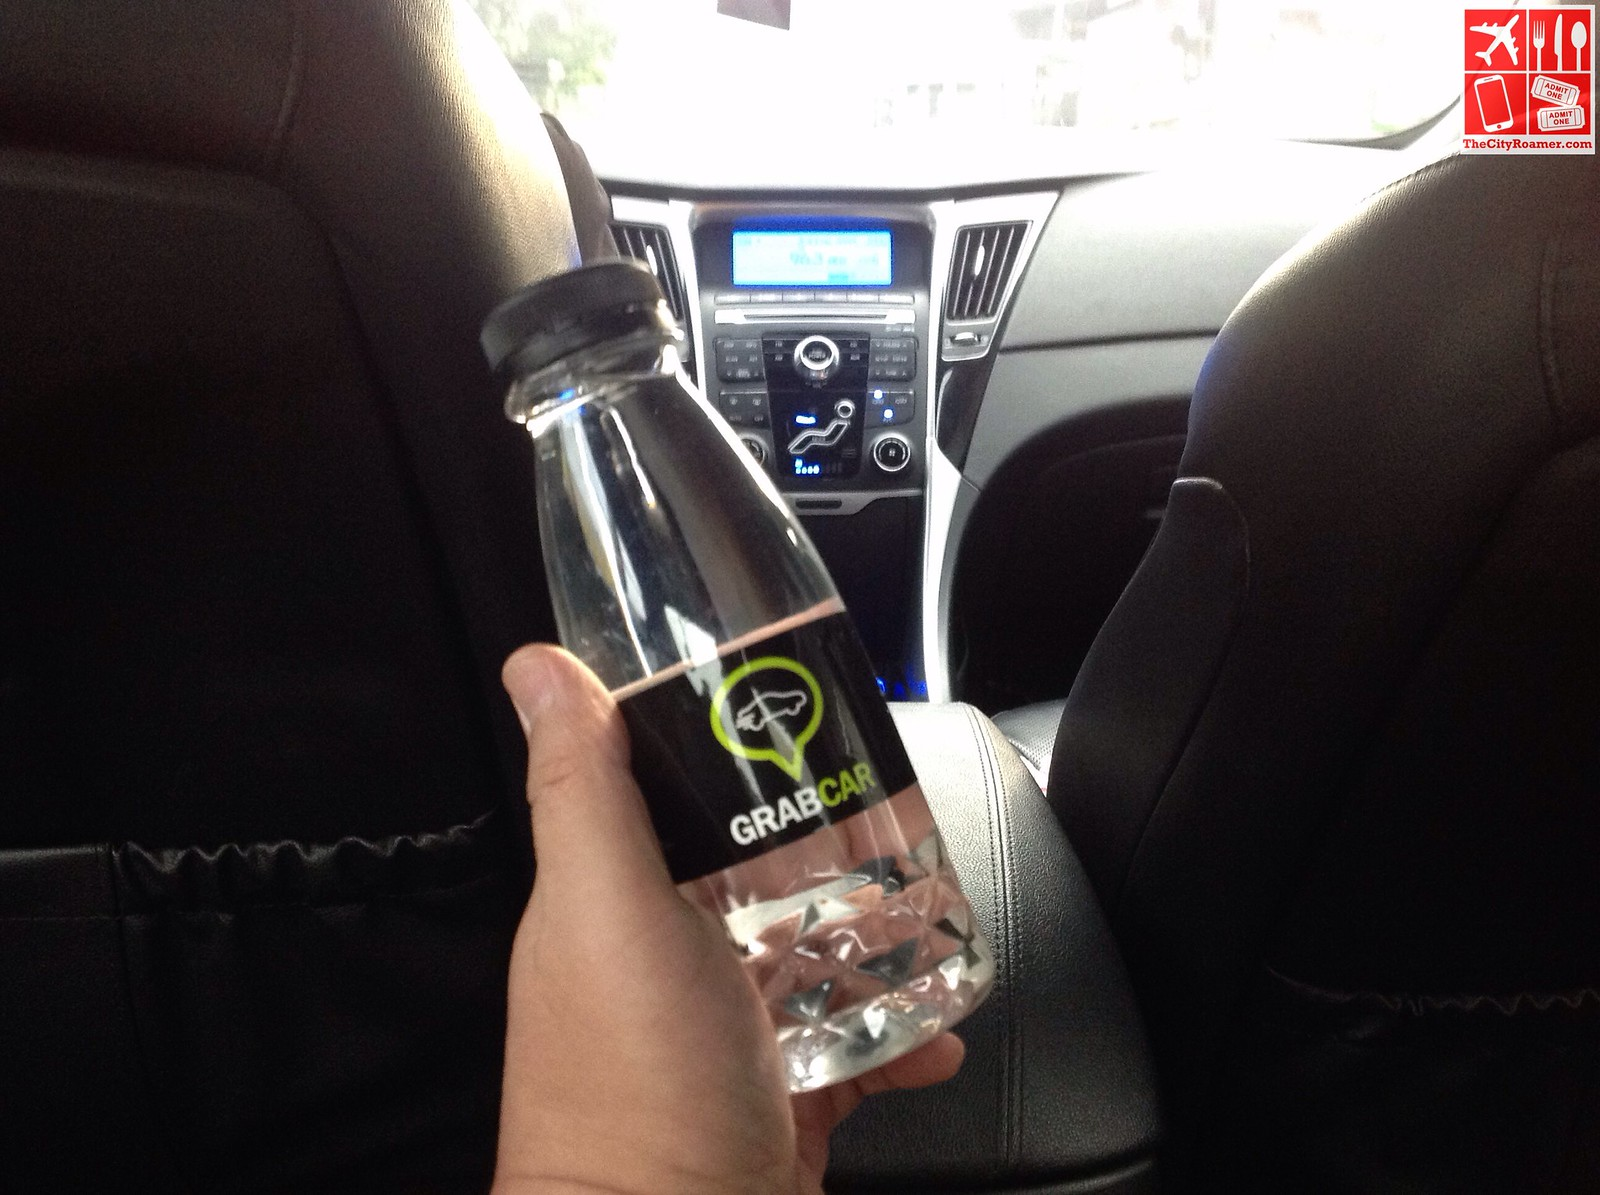 GrabCar Offers Riders a Free Bottle of Water